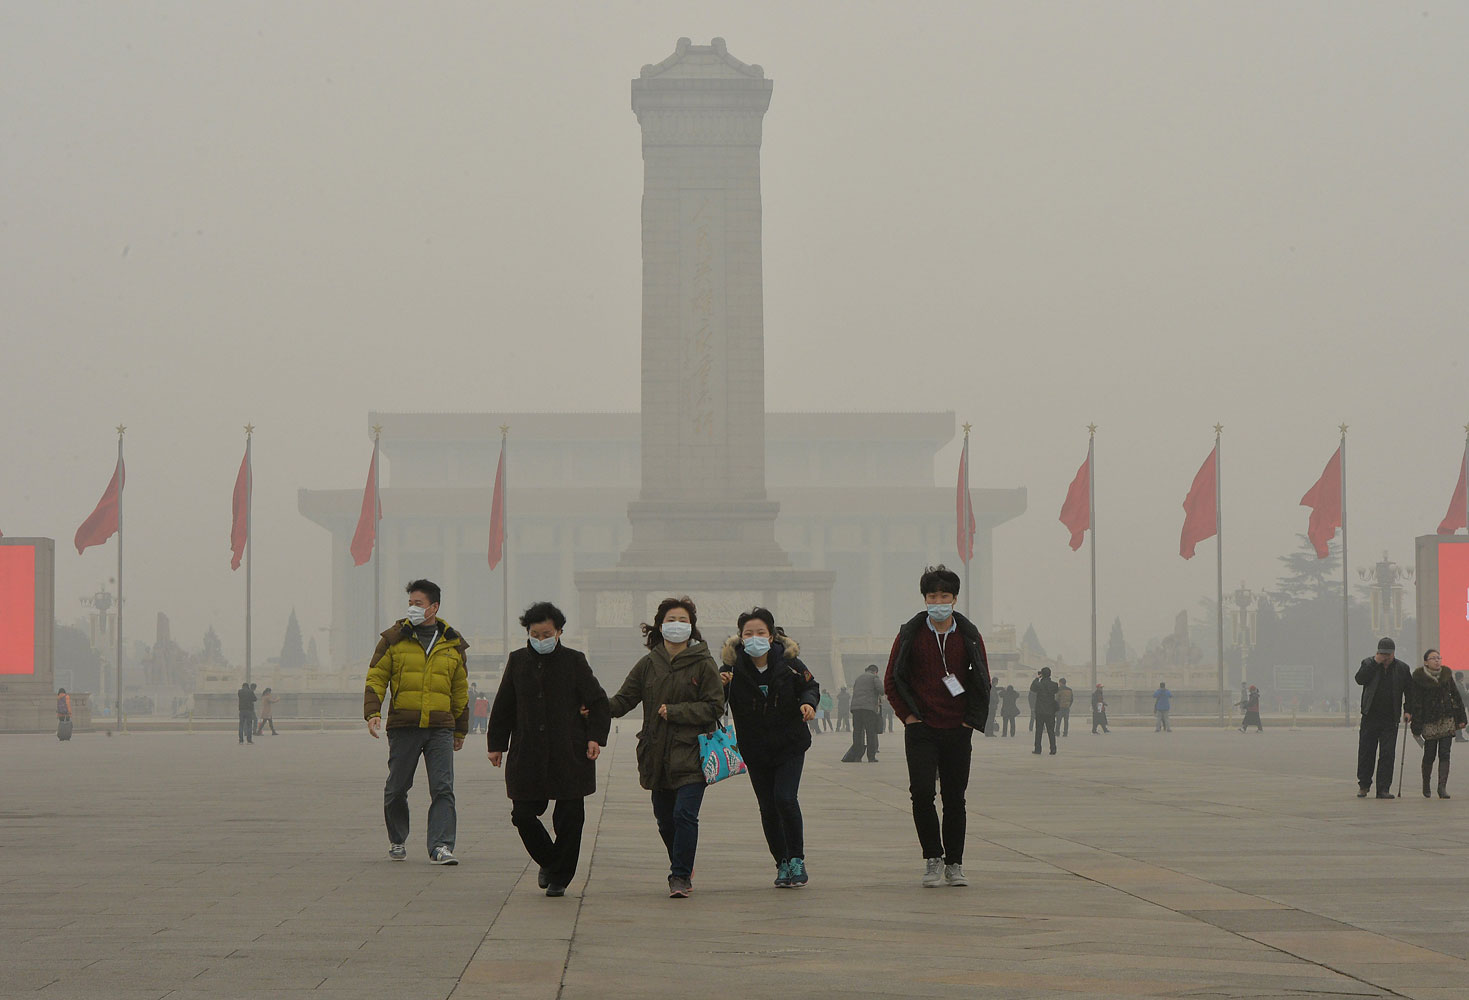 People wearing face masks visit Tiananmen Square as heavy air pollution shrouds Beijing on Feb. 26, 2014.